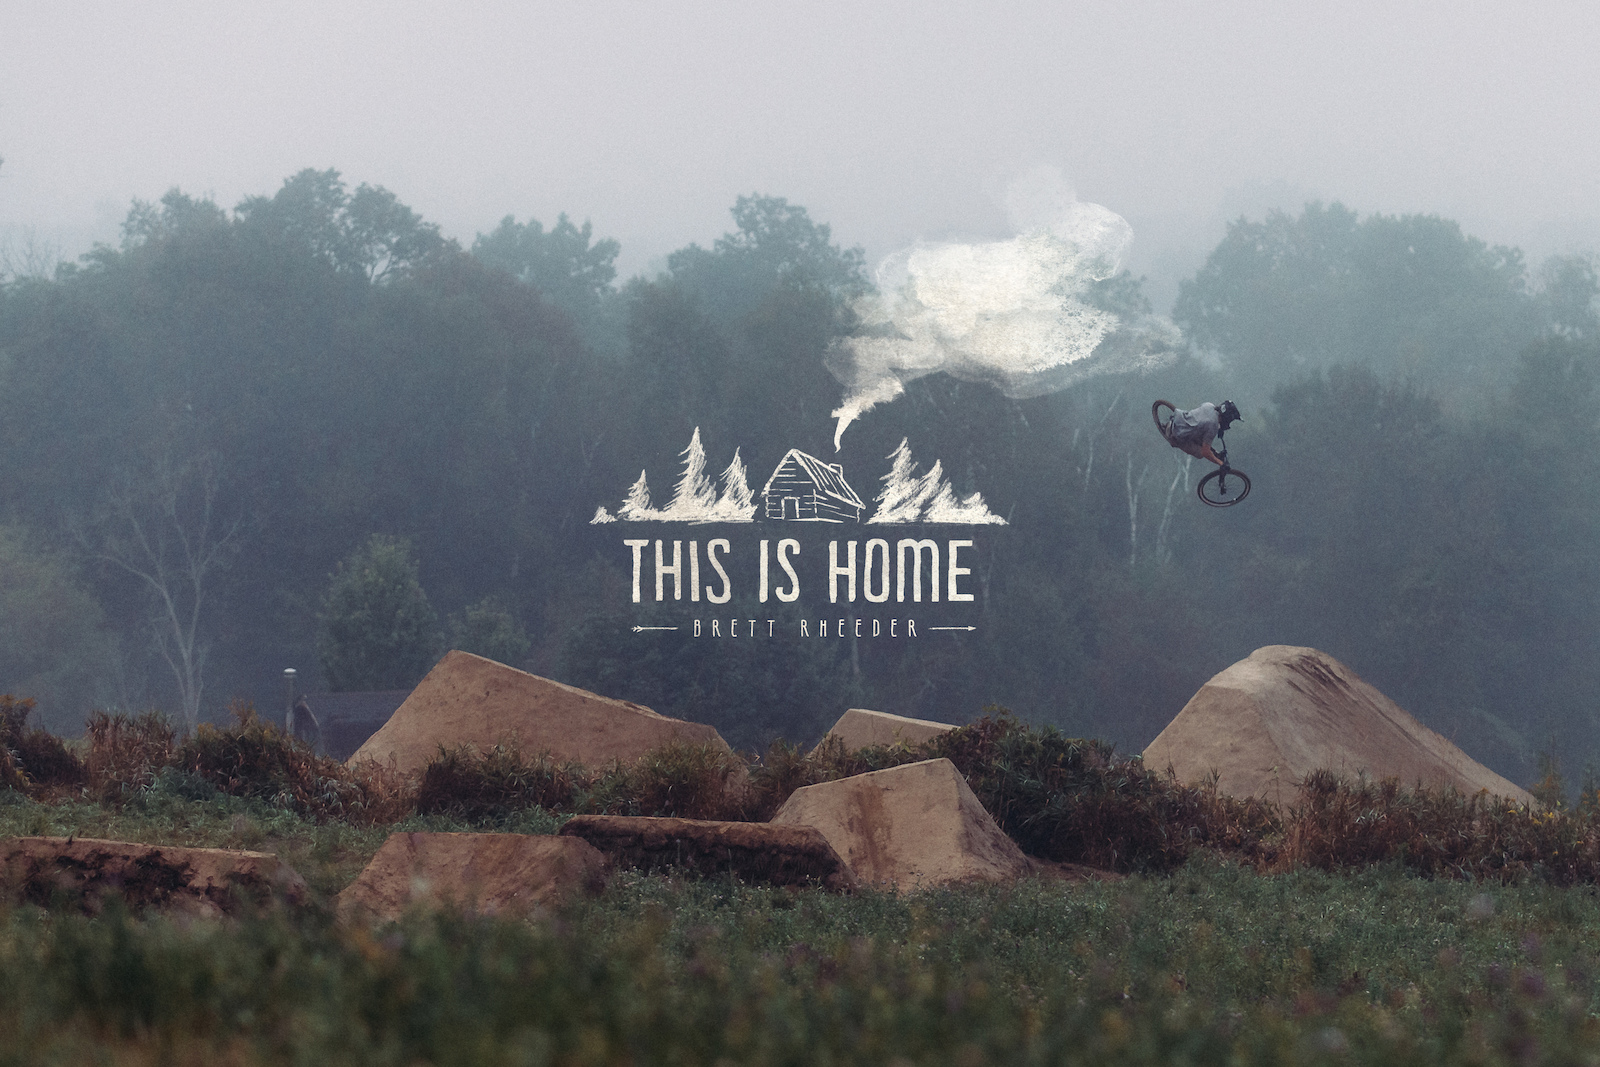 This Is Home with Brett Rheeder